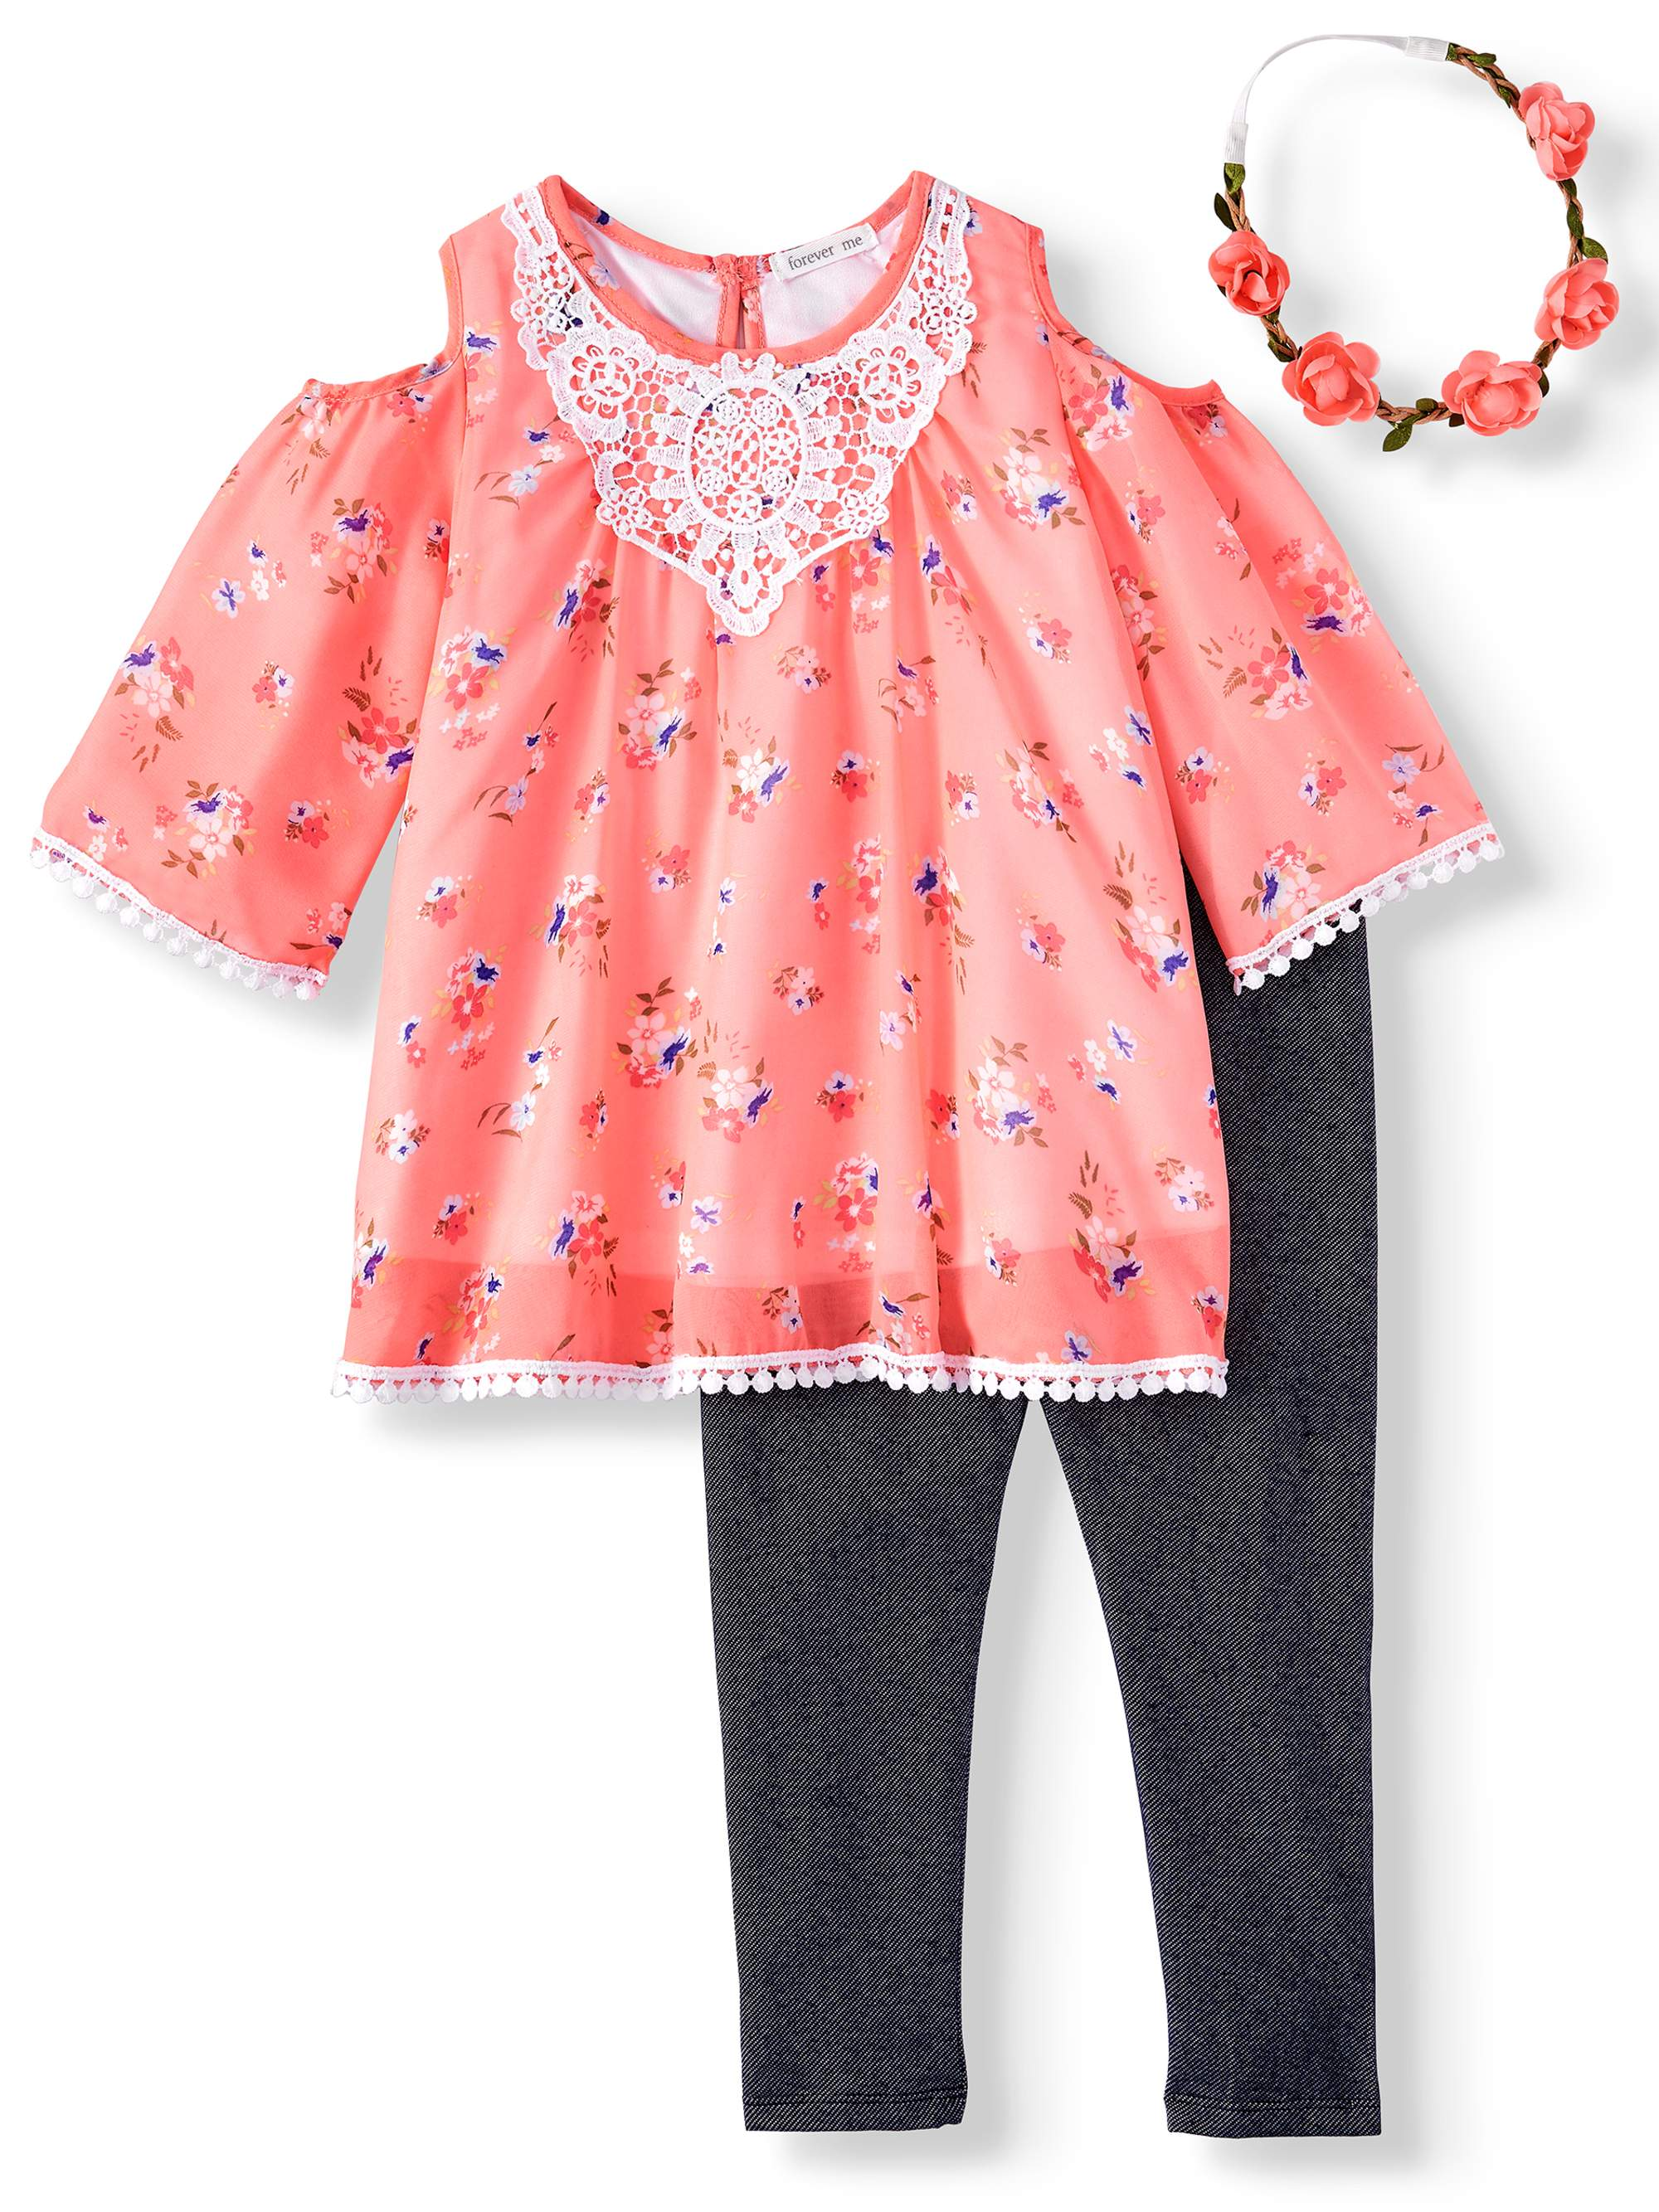 Cold Shoulder Floral Chiffon Top and Legging, 2-Piece Outfit Set with Headband (Little Girls & Big Girls)